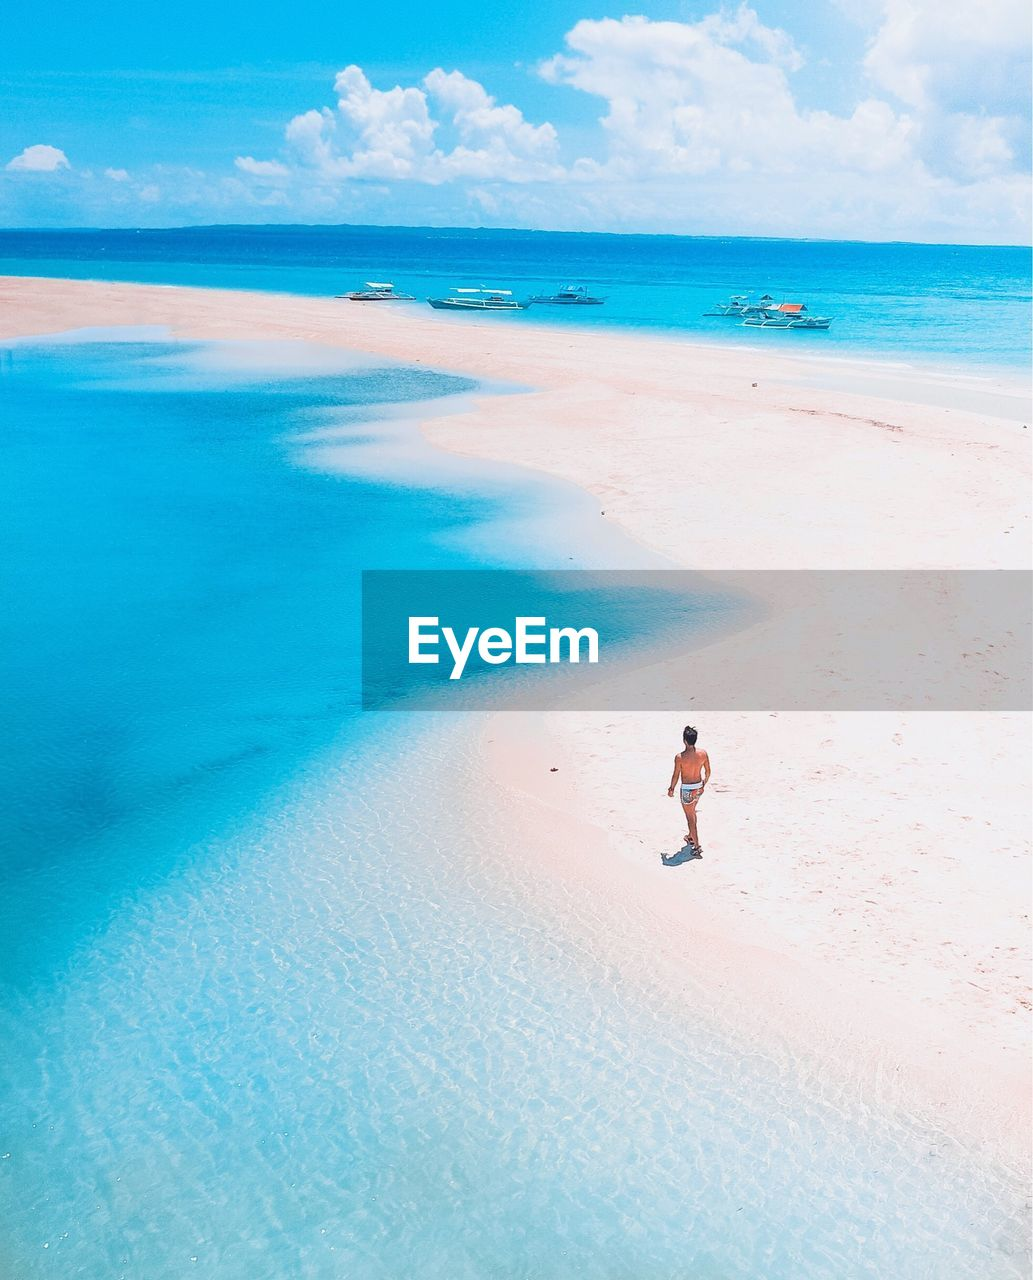 land, sea, beach, water, beauty in nature, sky, scenics - nature, horizon, horizon over water, real people, sand, lifestyles, cloud - sky, one person, leisure activity, nature, day, vacations, holiday, outdoors